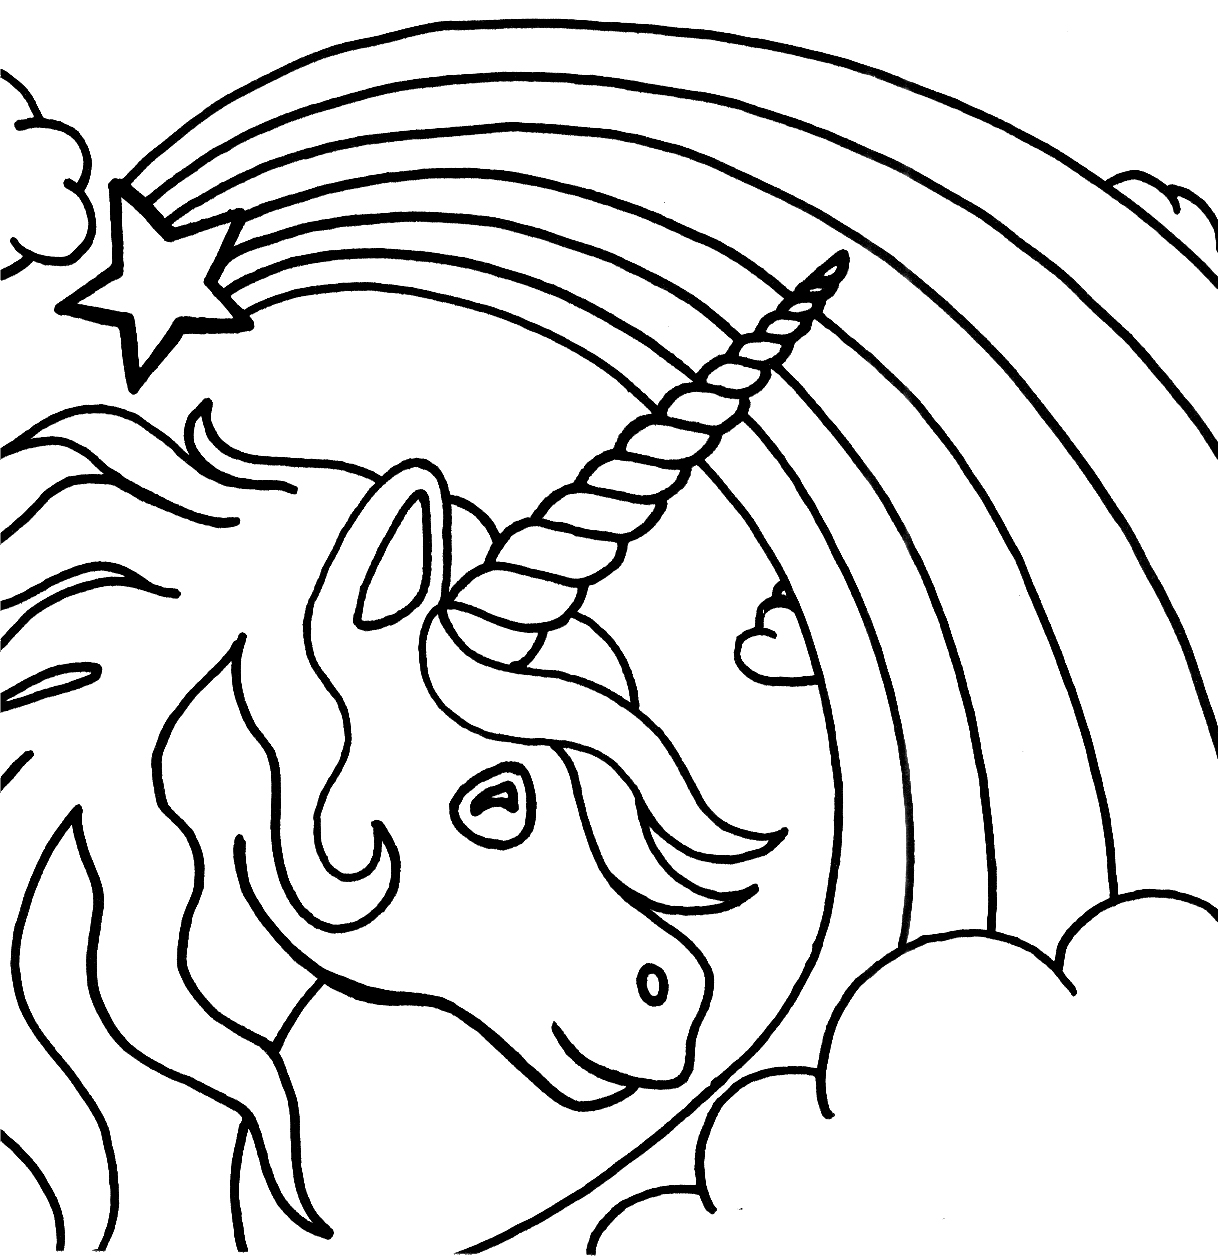 unicorn coloring pages for kids - Colouring In Kids